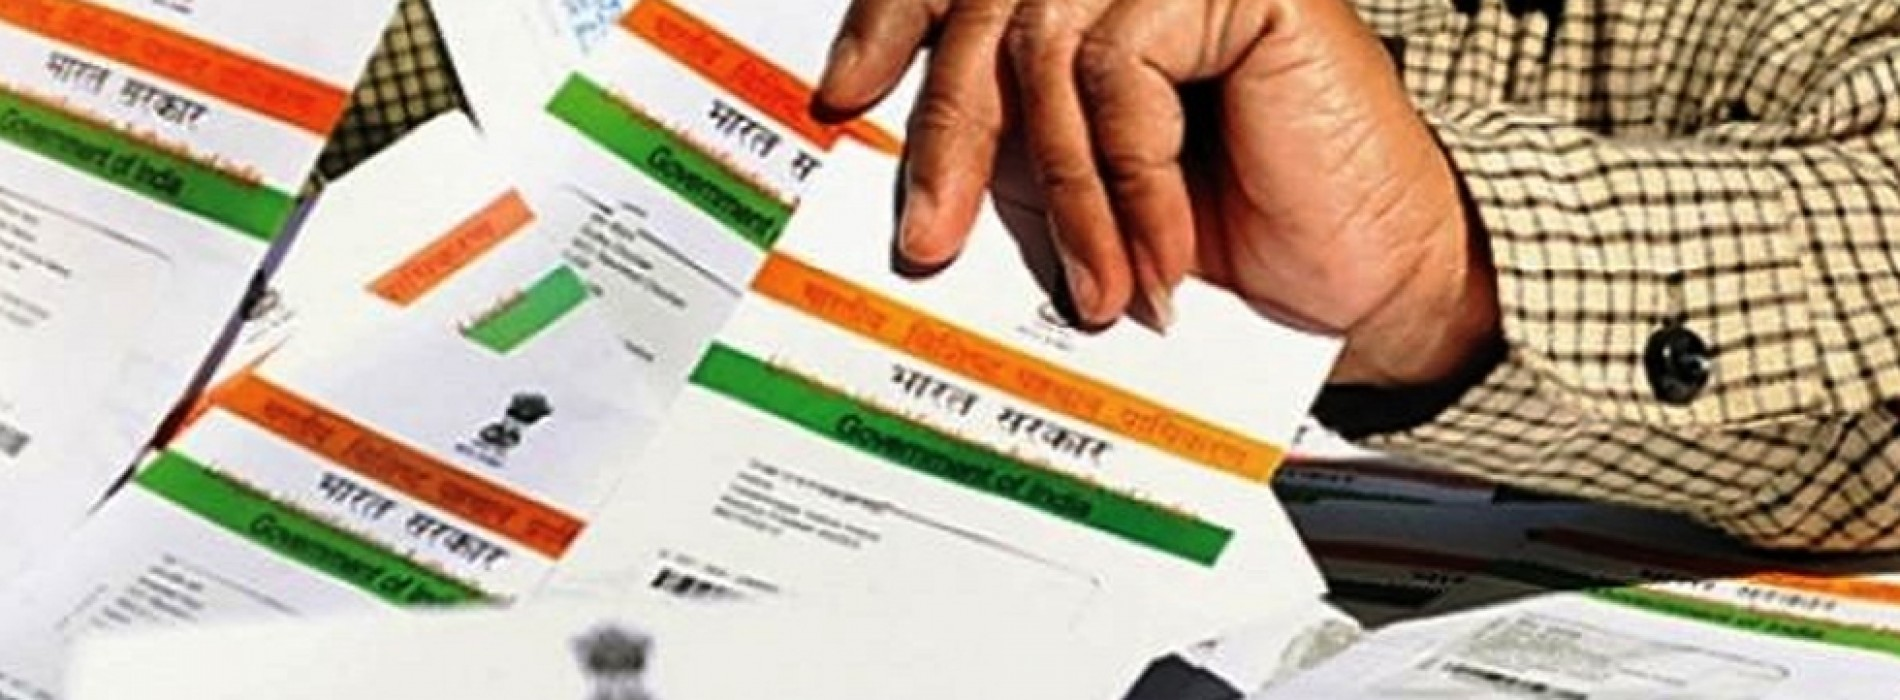 Aadhaar and other government IDs compulsory to book domestic flights soon